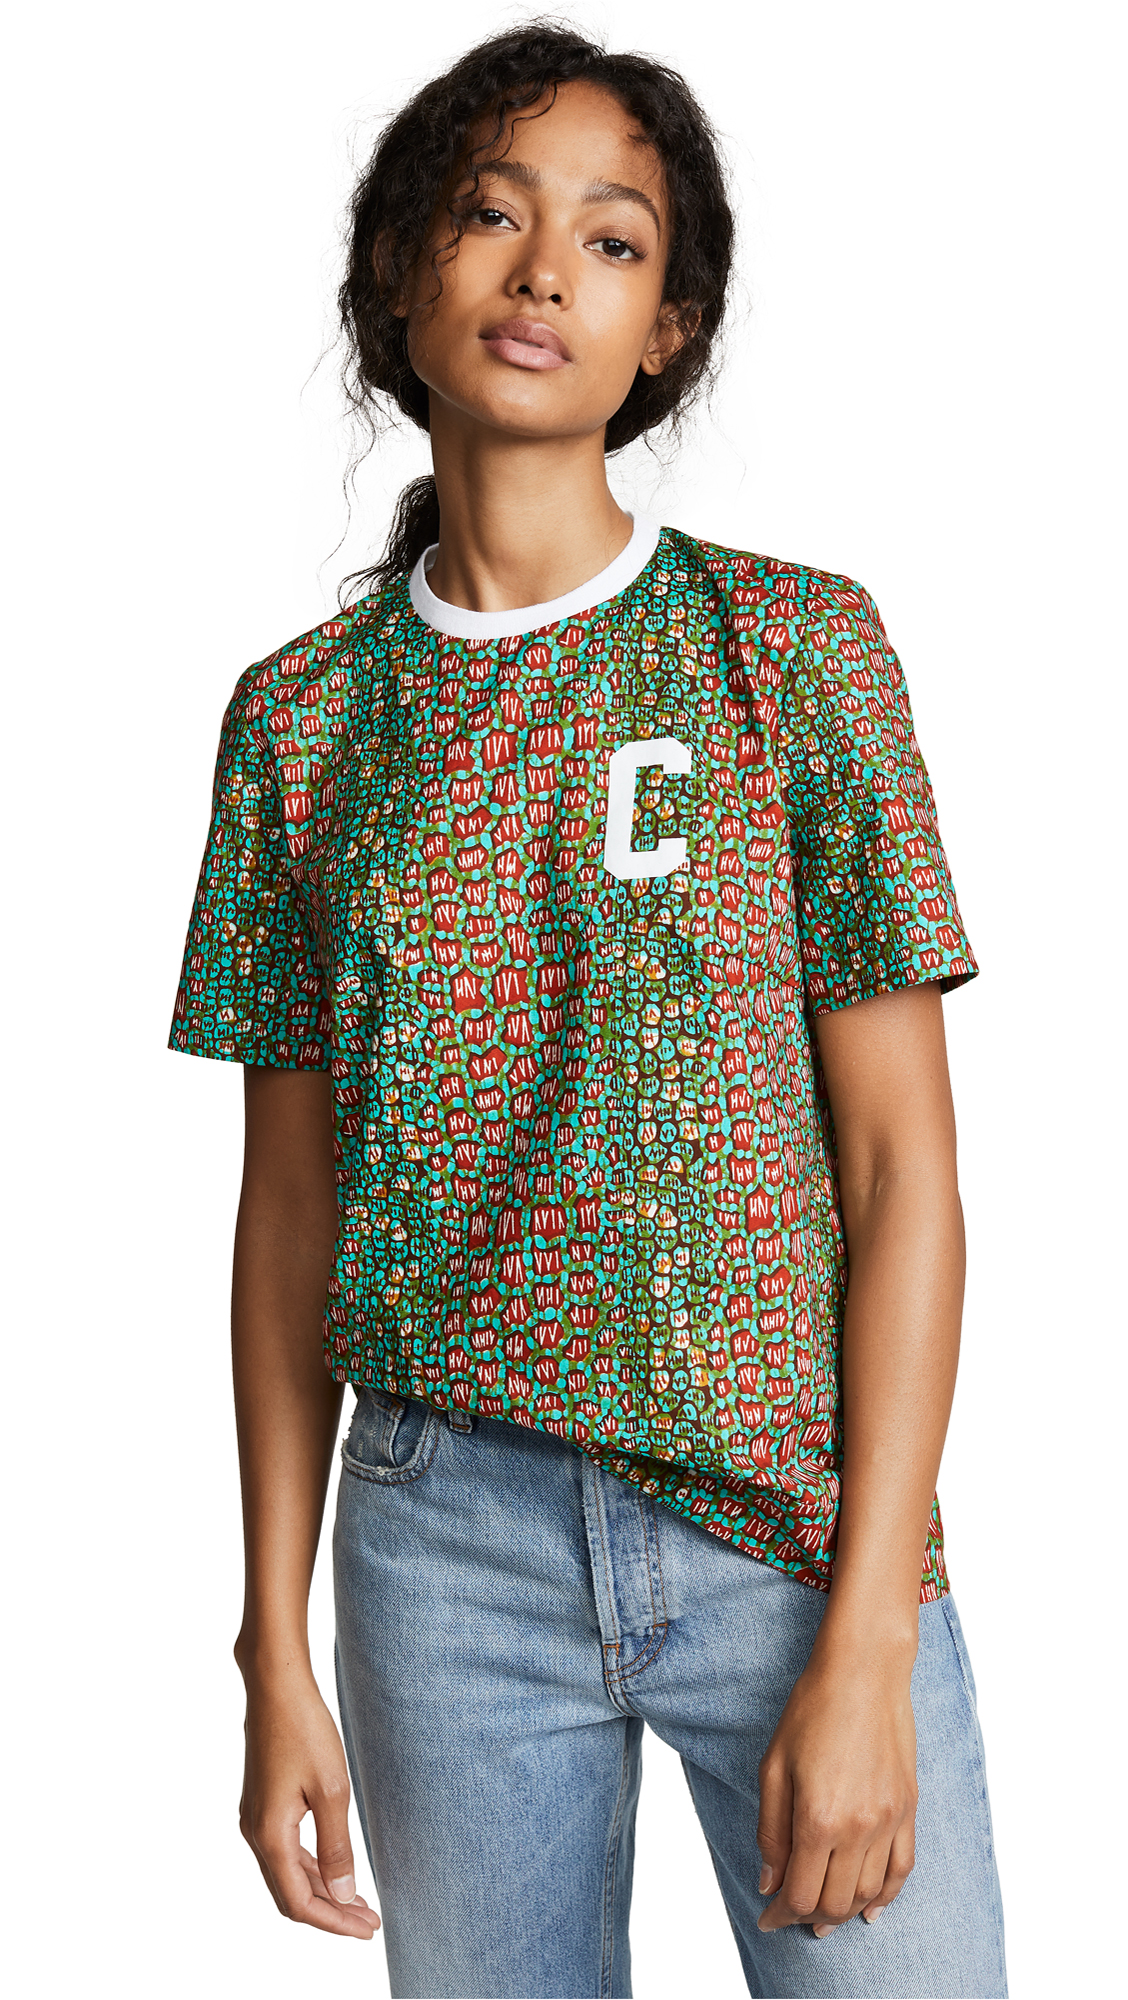 MAISON CHATEAU ROUGE Multi Patterened Logo Tee in Croco Vert